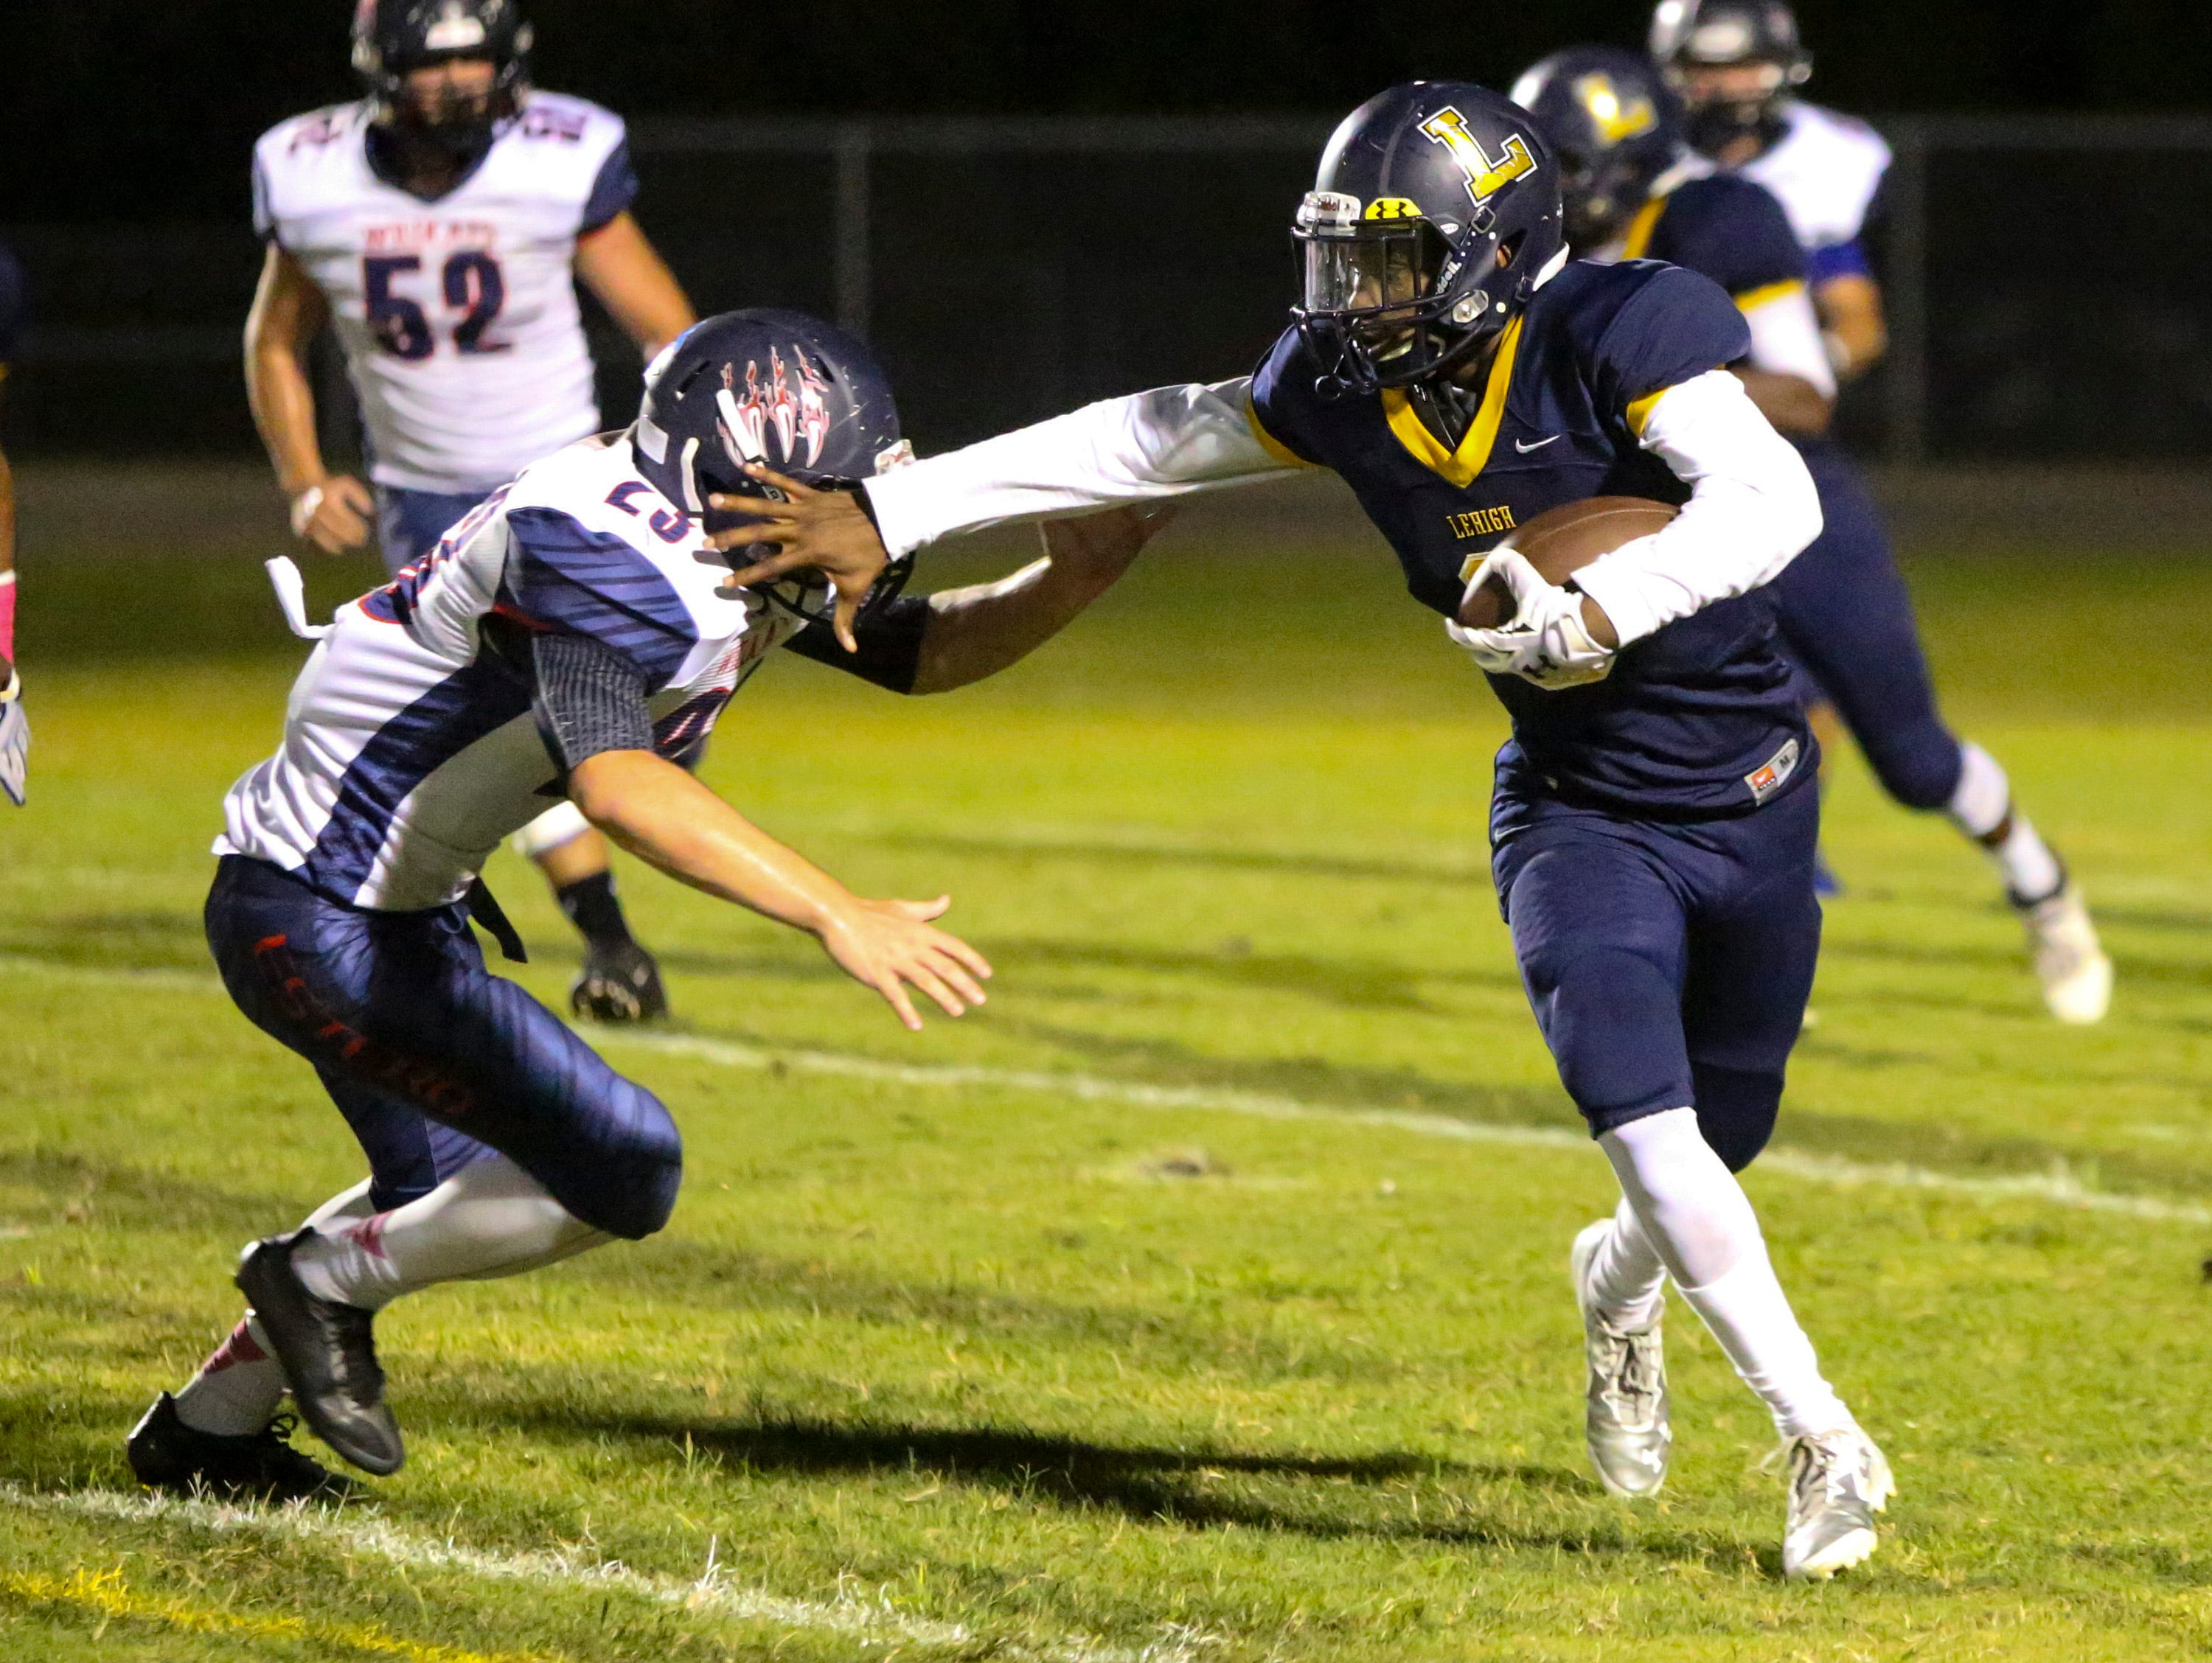 Lehigh's Delshawn Green stiff arms Estero's Jon Raus as he looks to stop Green's run. Estero went on to win 21-7.